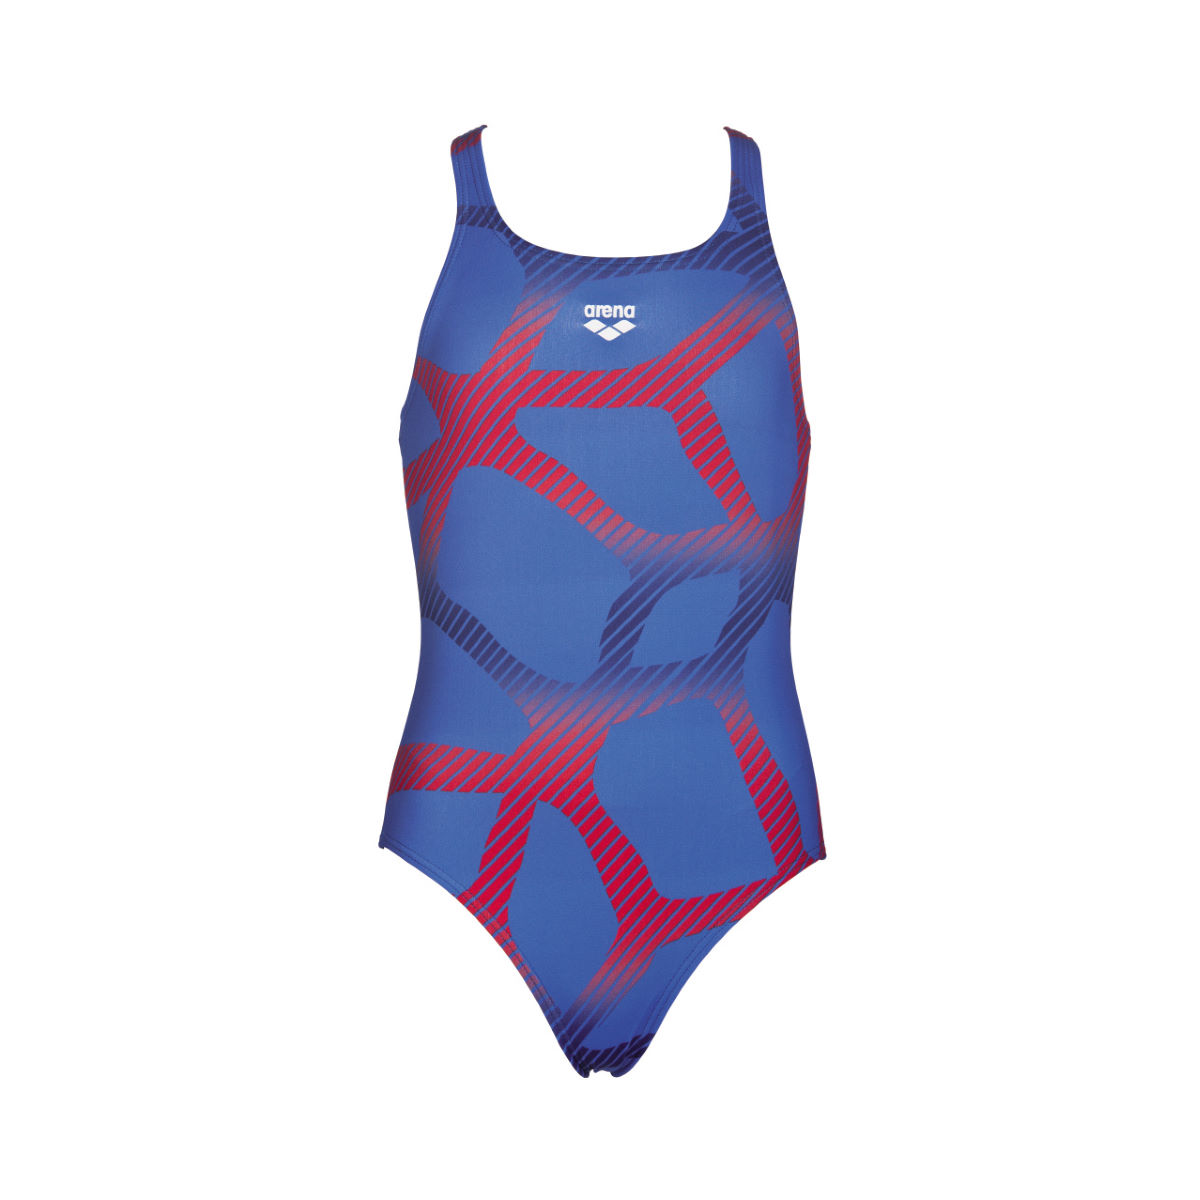 Maillot de bain Fille Arena Spider - 29'' Royal/Red